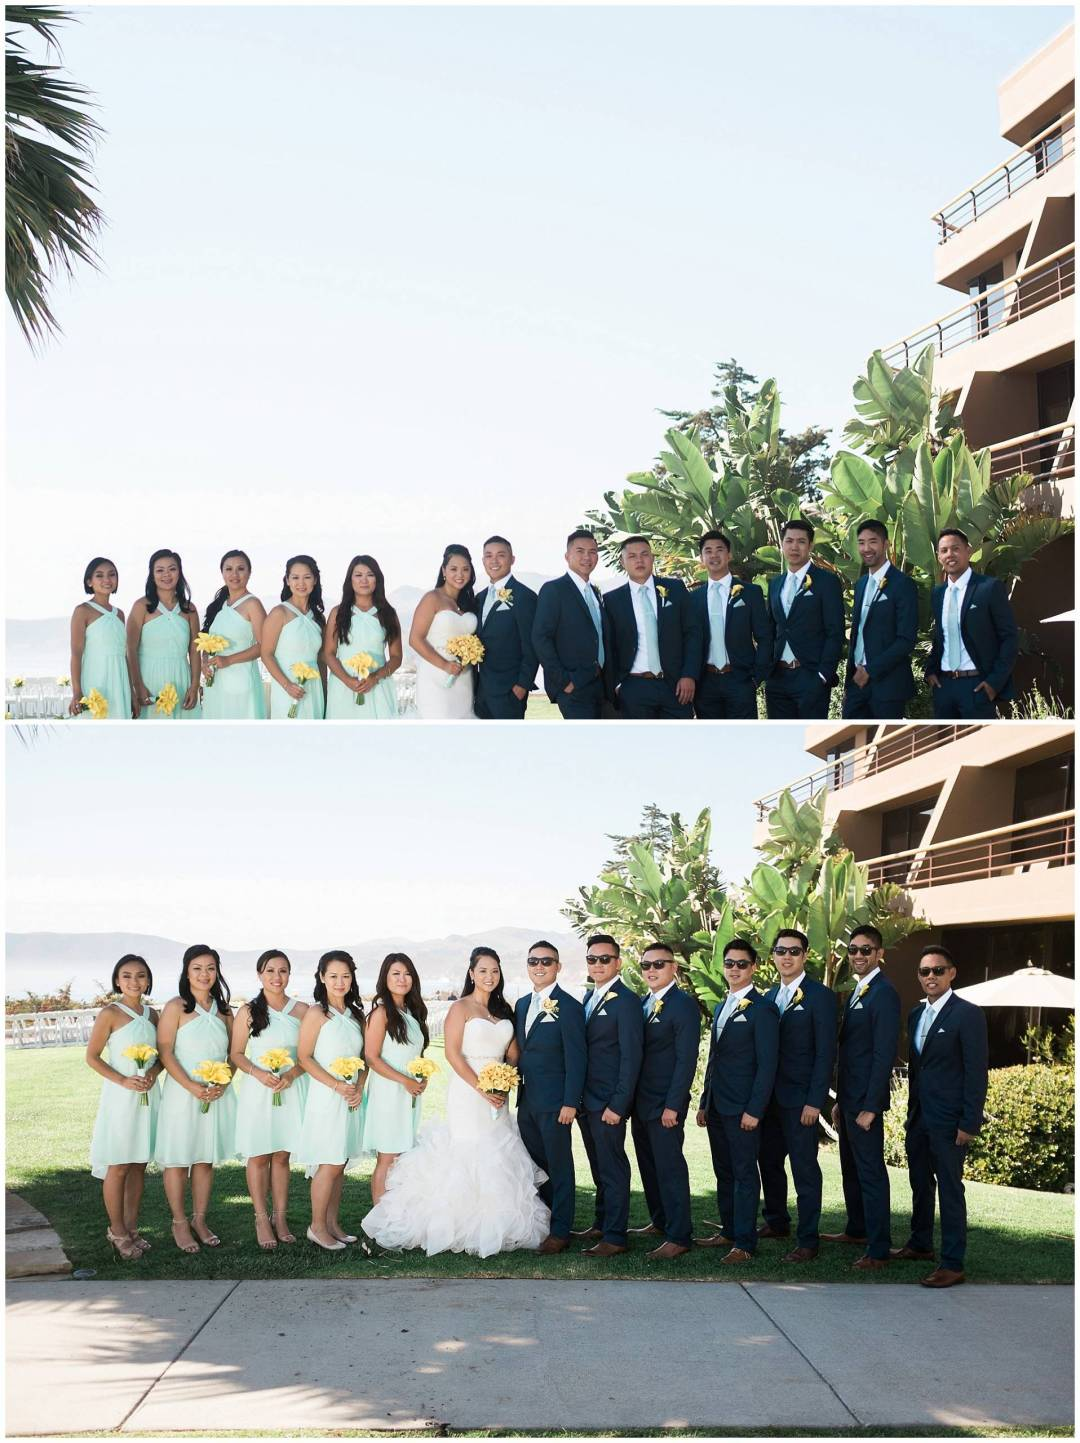 Ha & Allen Wedding Third Element Photography & Cinema Pismo Beach Cliffs Resort Central Coast Hybrid Film Wedding Photographer_0018